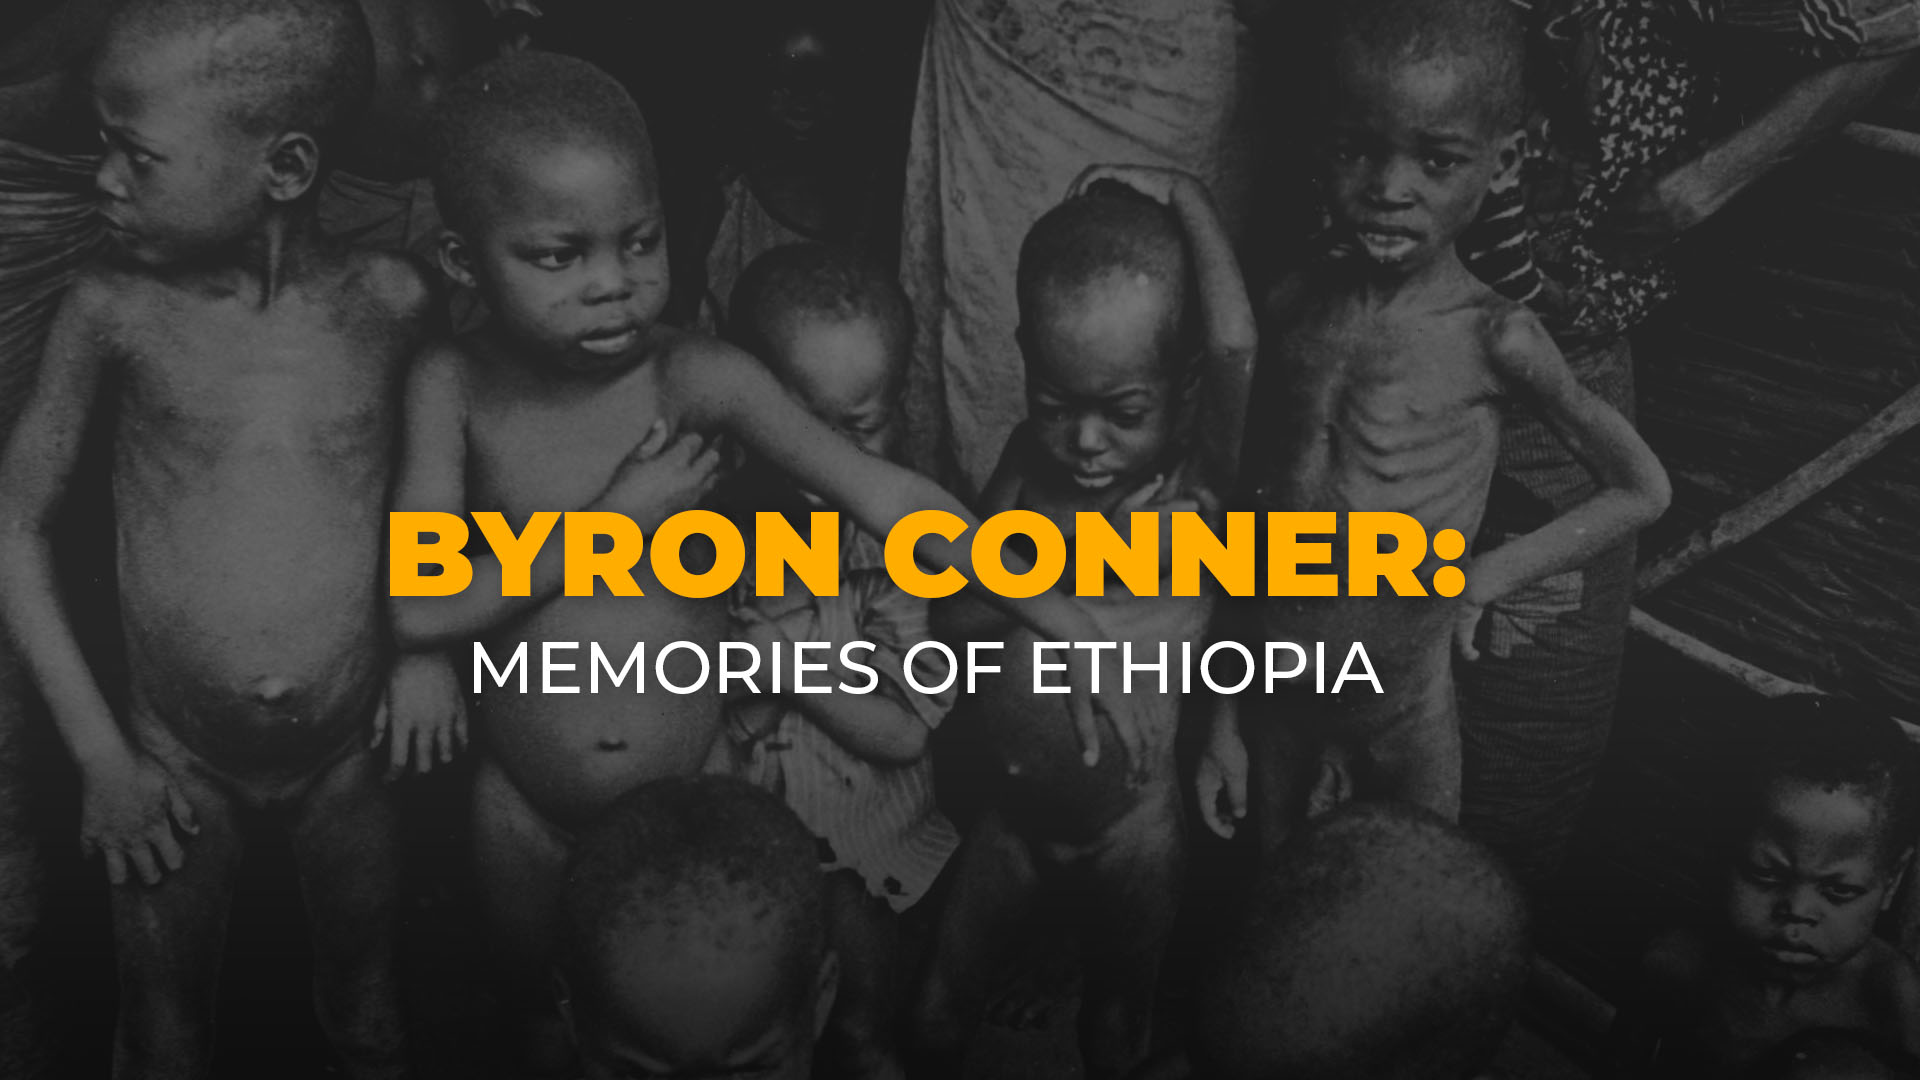 Byron Conner Memories of Ethiopia banner